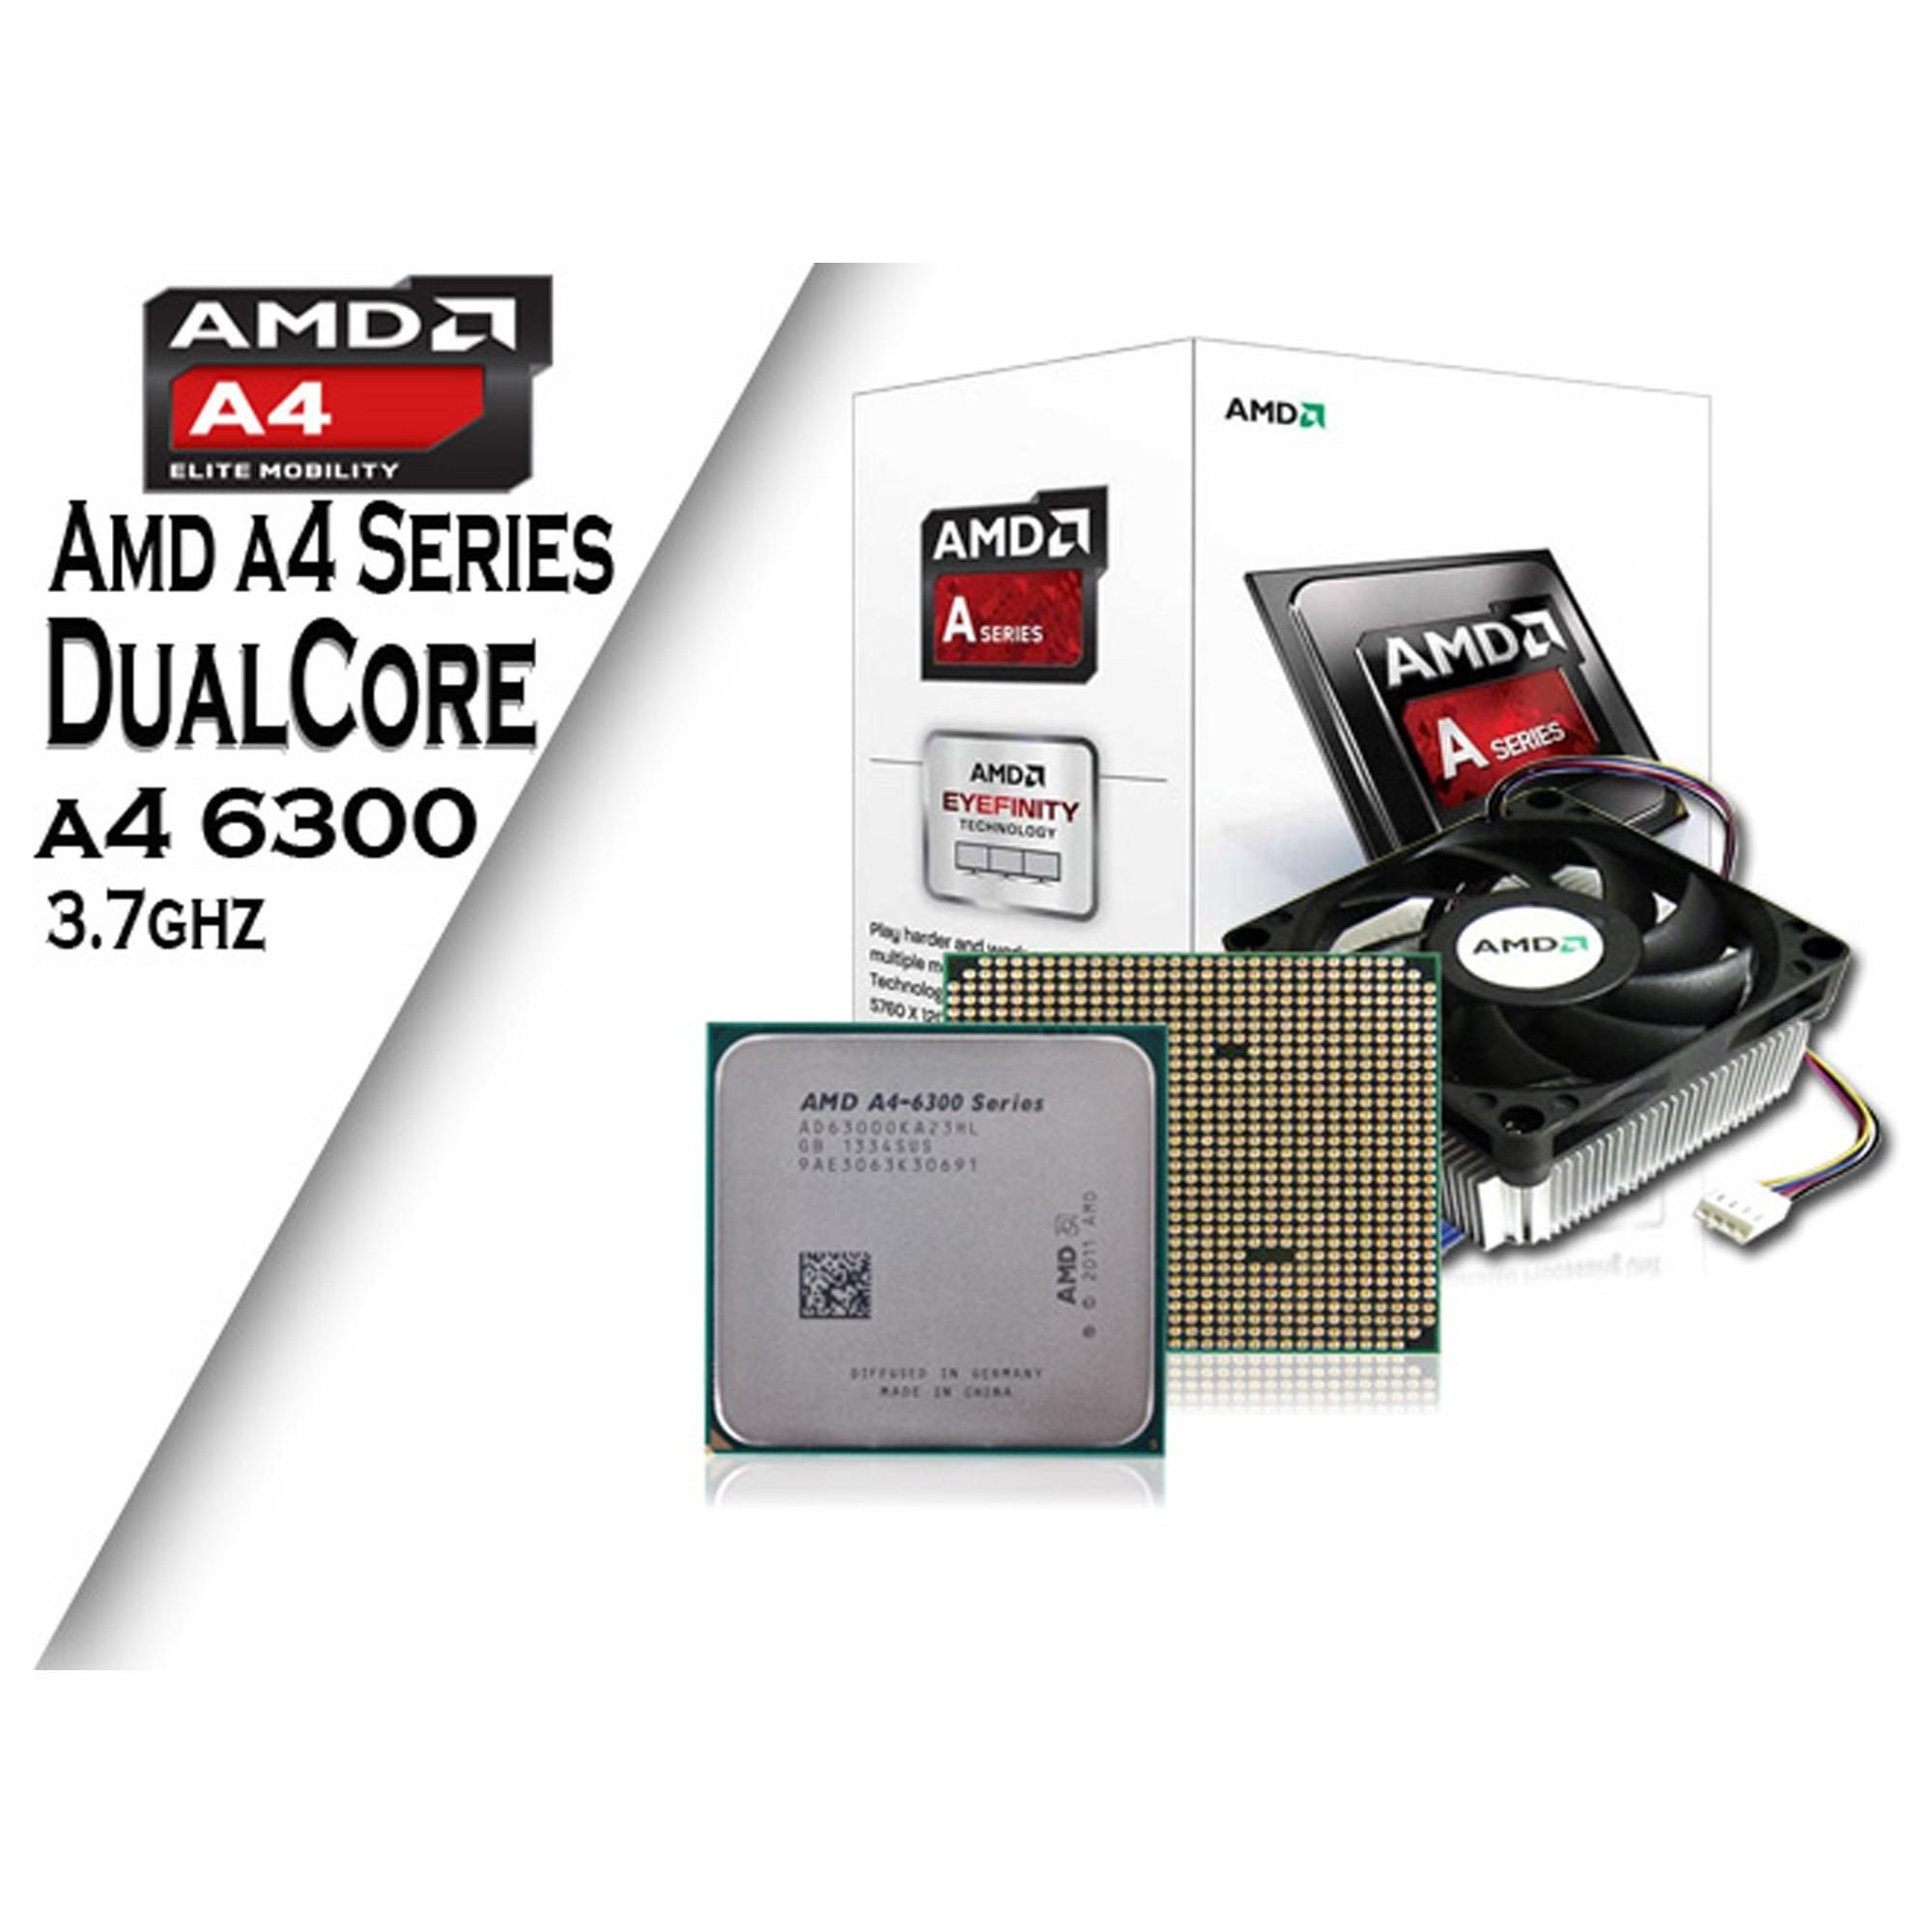 Philippines Best Buy Amd 03 08 2018 A8 7650k Kaveri Quad Core 33ghz Fm2 Box 6300 37ghz Processor